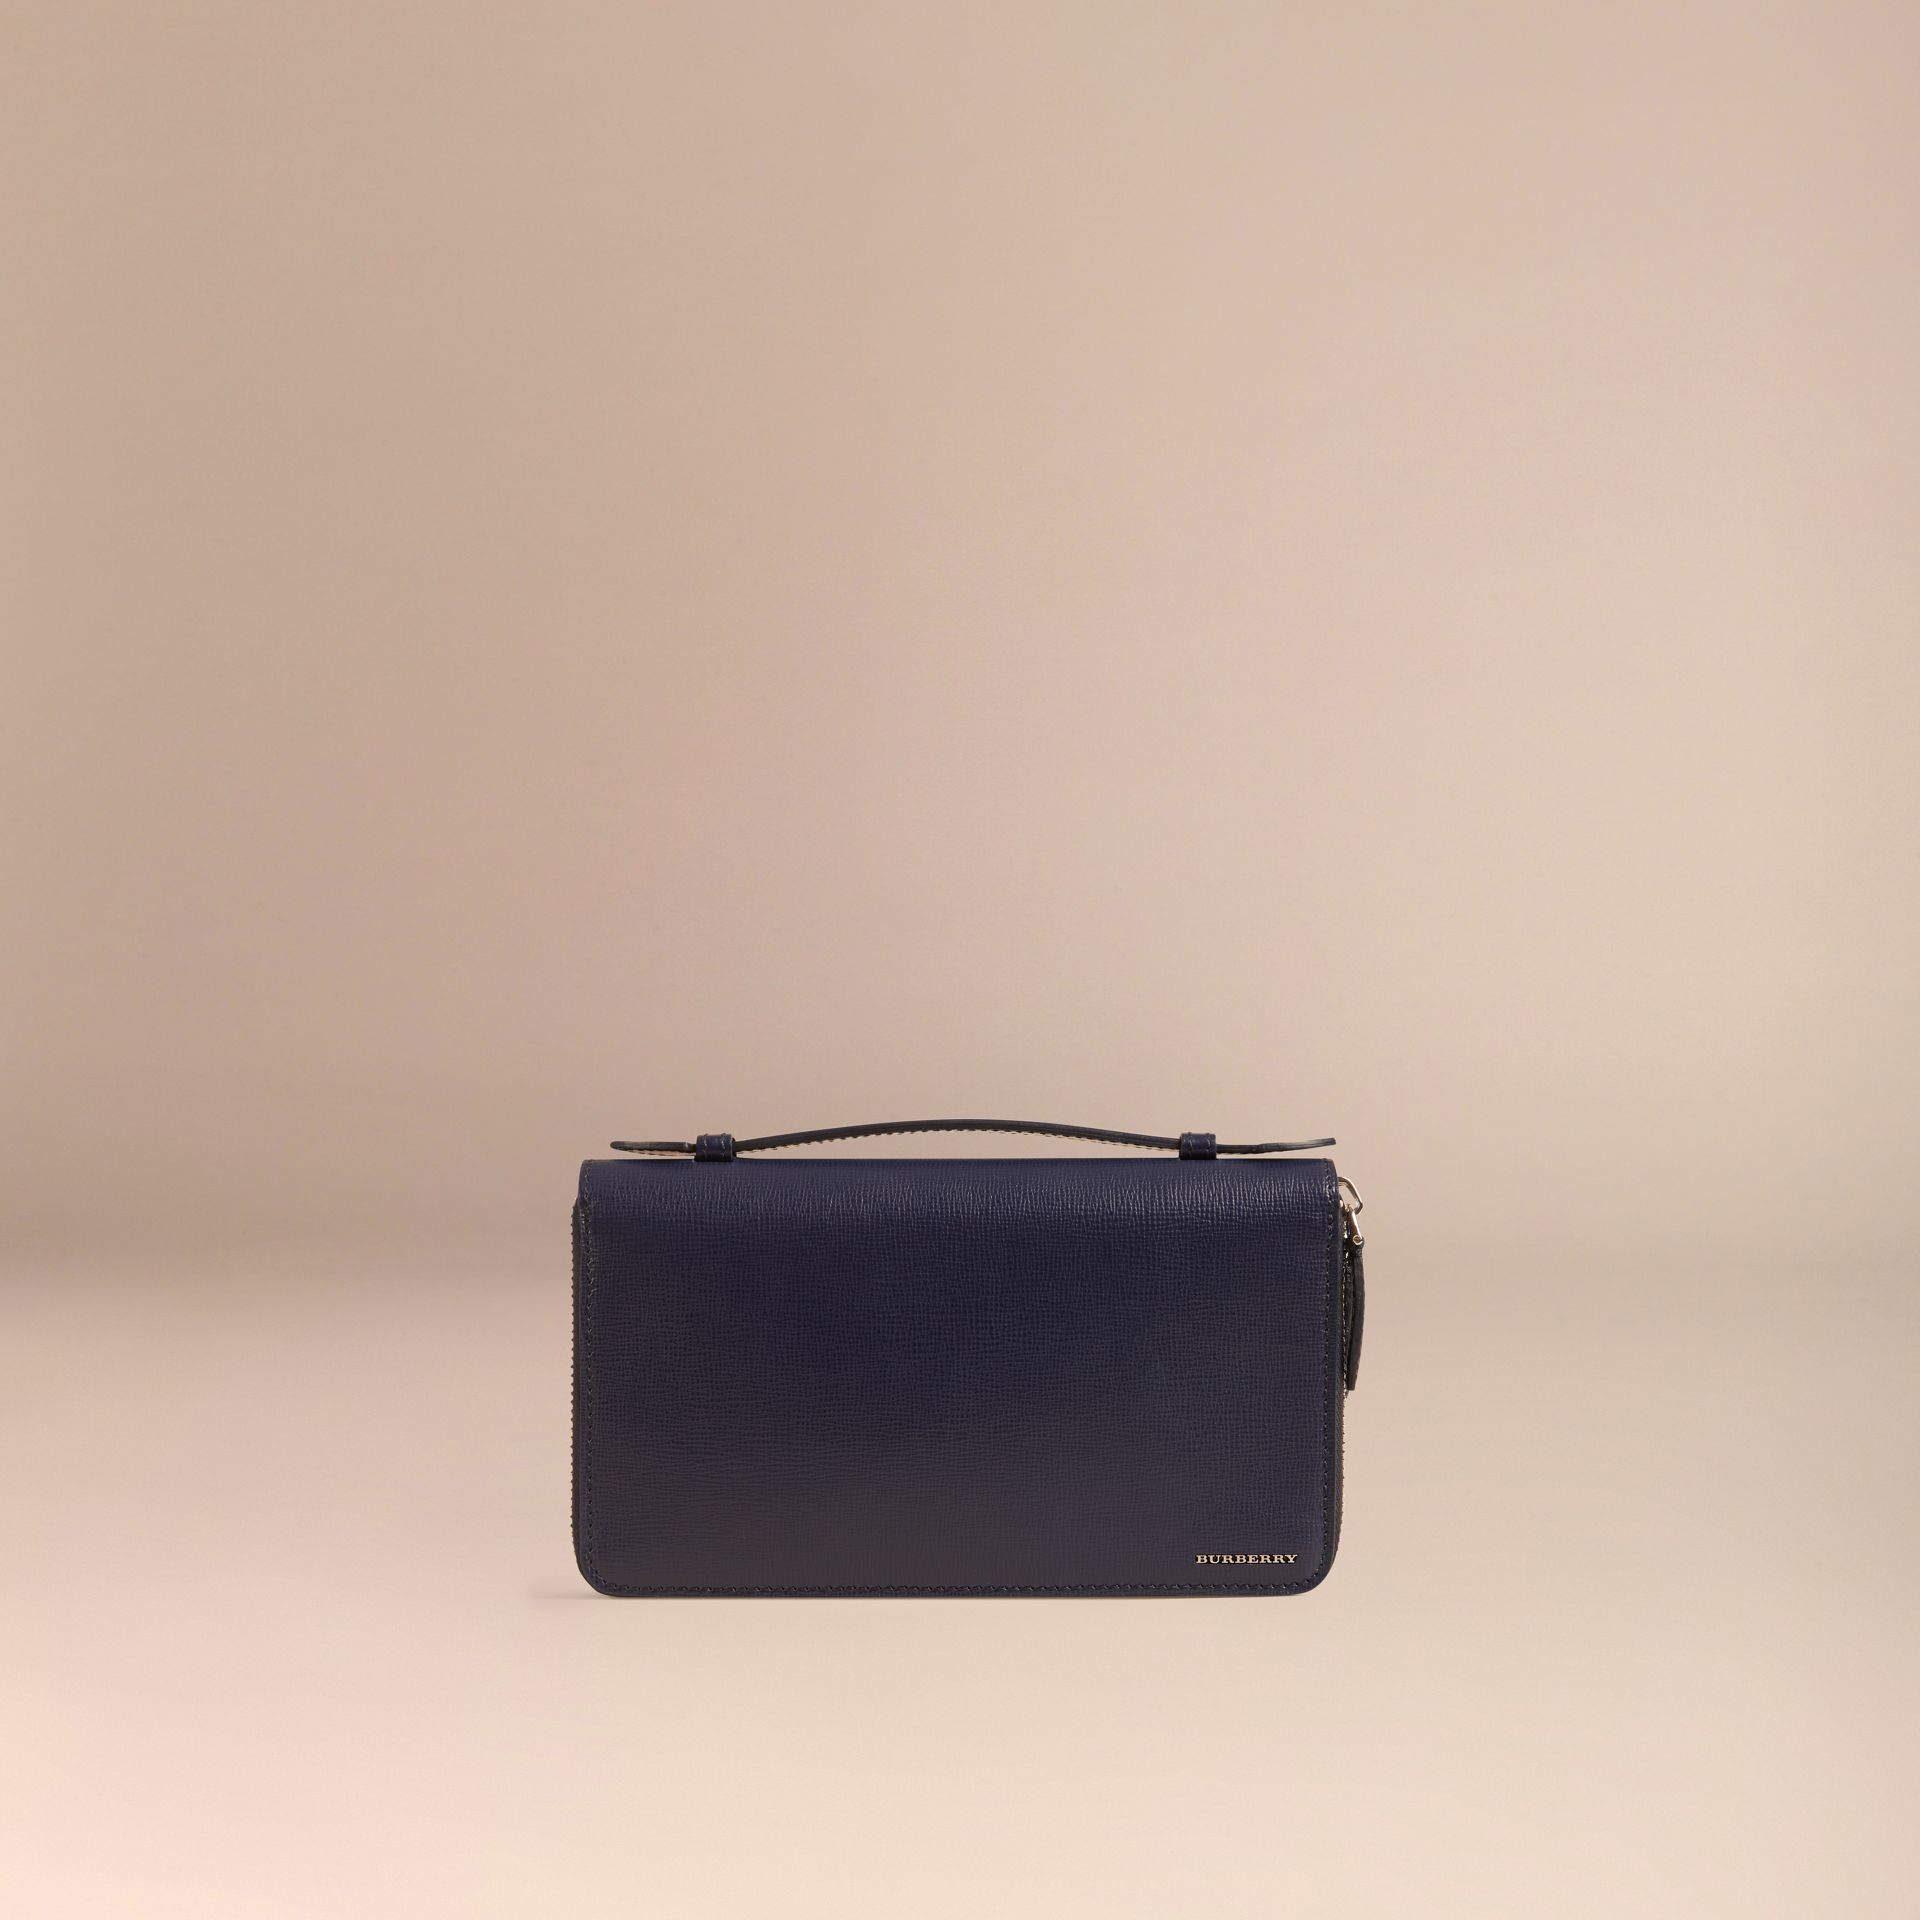 London Leather Travel Wallet in Dark Navy - Men | Burberry - gallery image 3